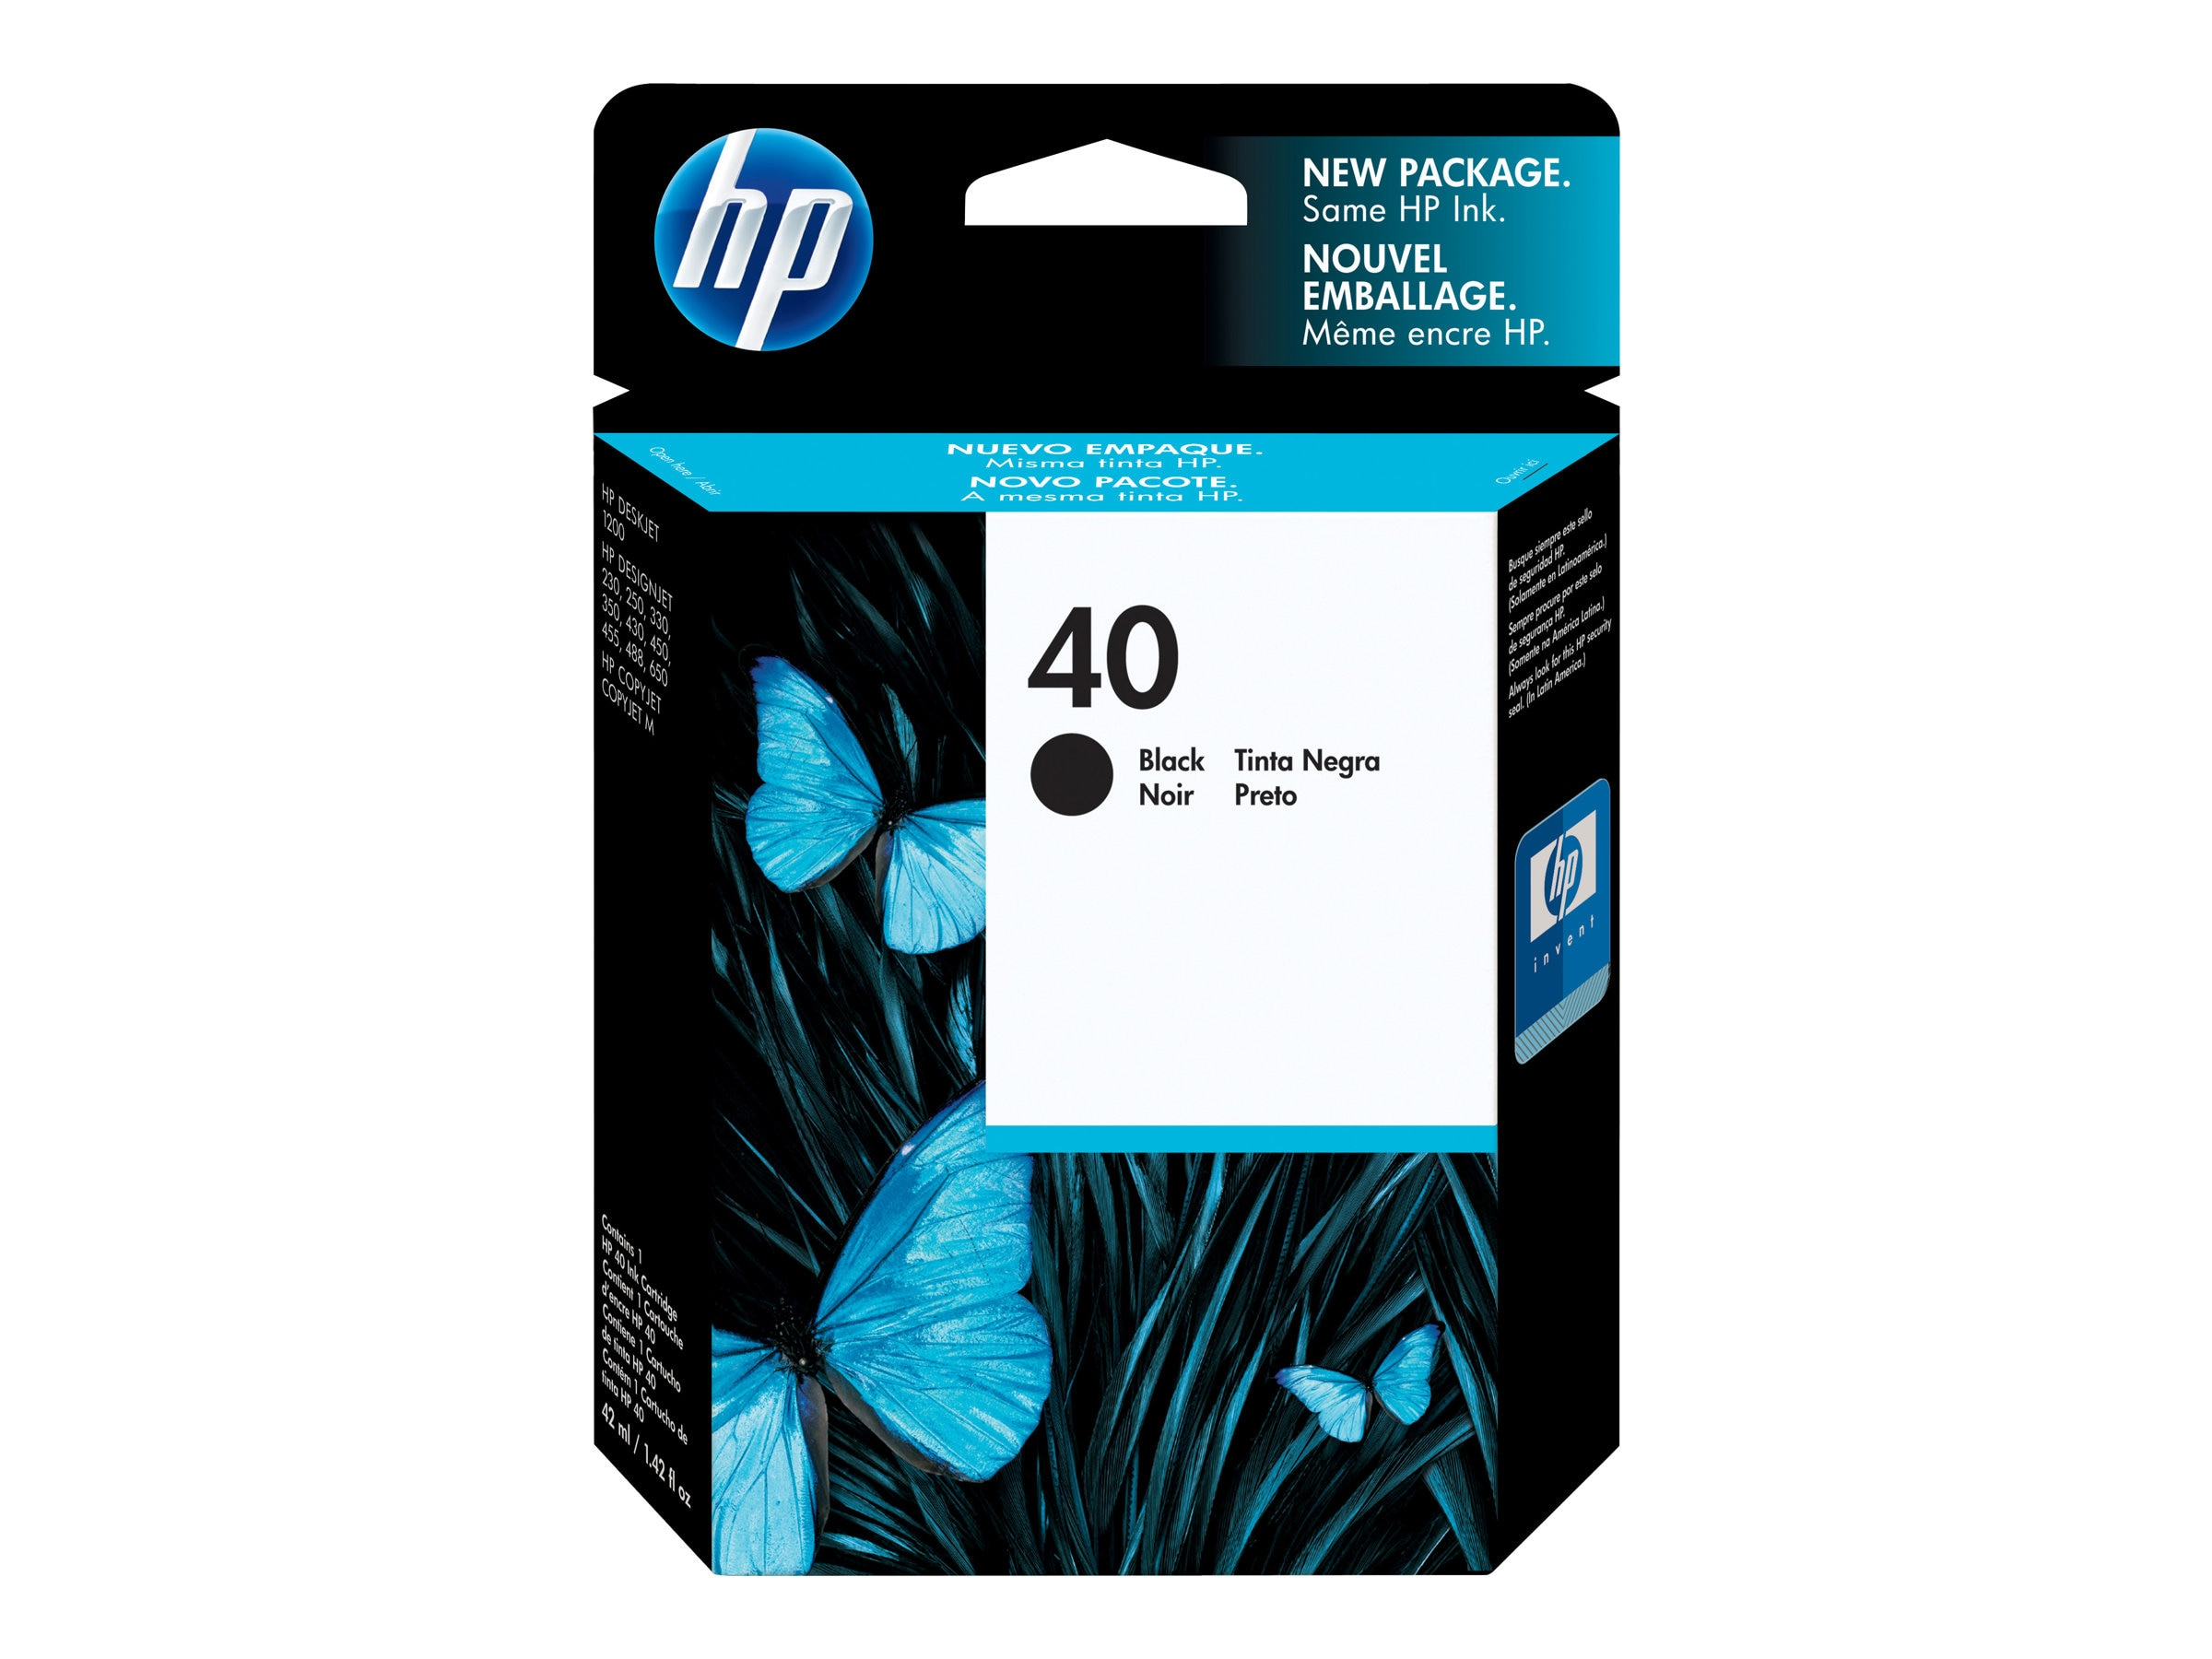 HP 40 (51640A) Black Original Ink Cartridge, 51640A, 26647, Ink Cartridges & Ink Refill Kits